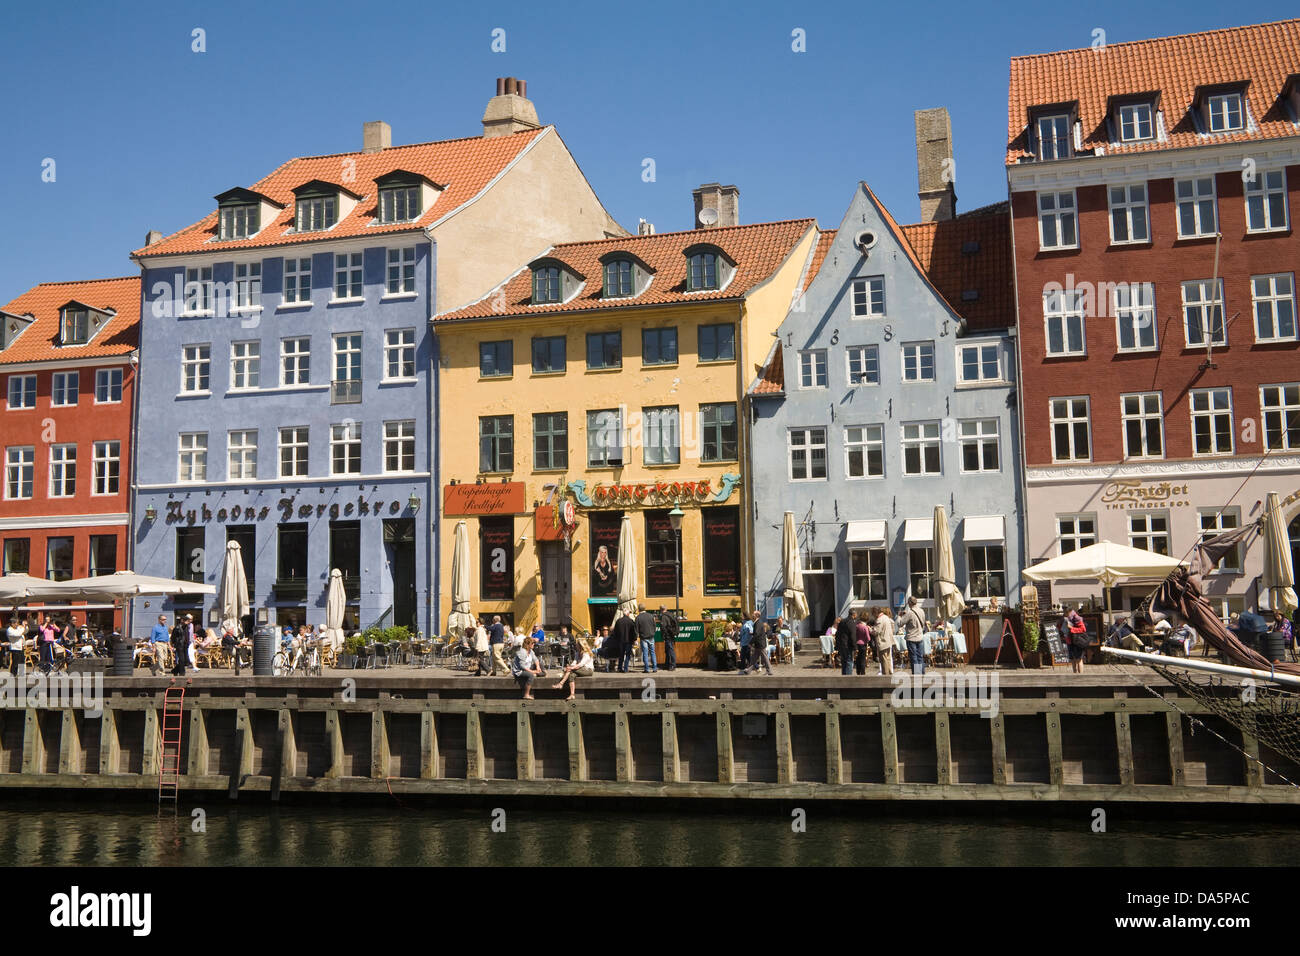 Copenhagen Denmark EU 17thc building with colourful facades in Nyhavn with open air cafes and restaurants on canal - Stock Image